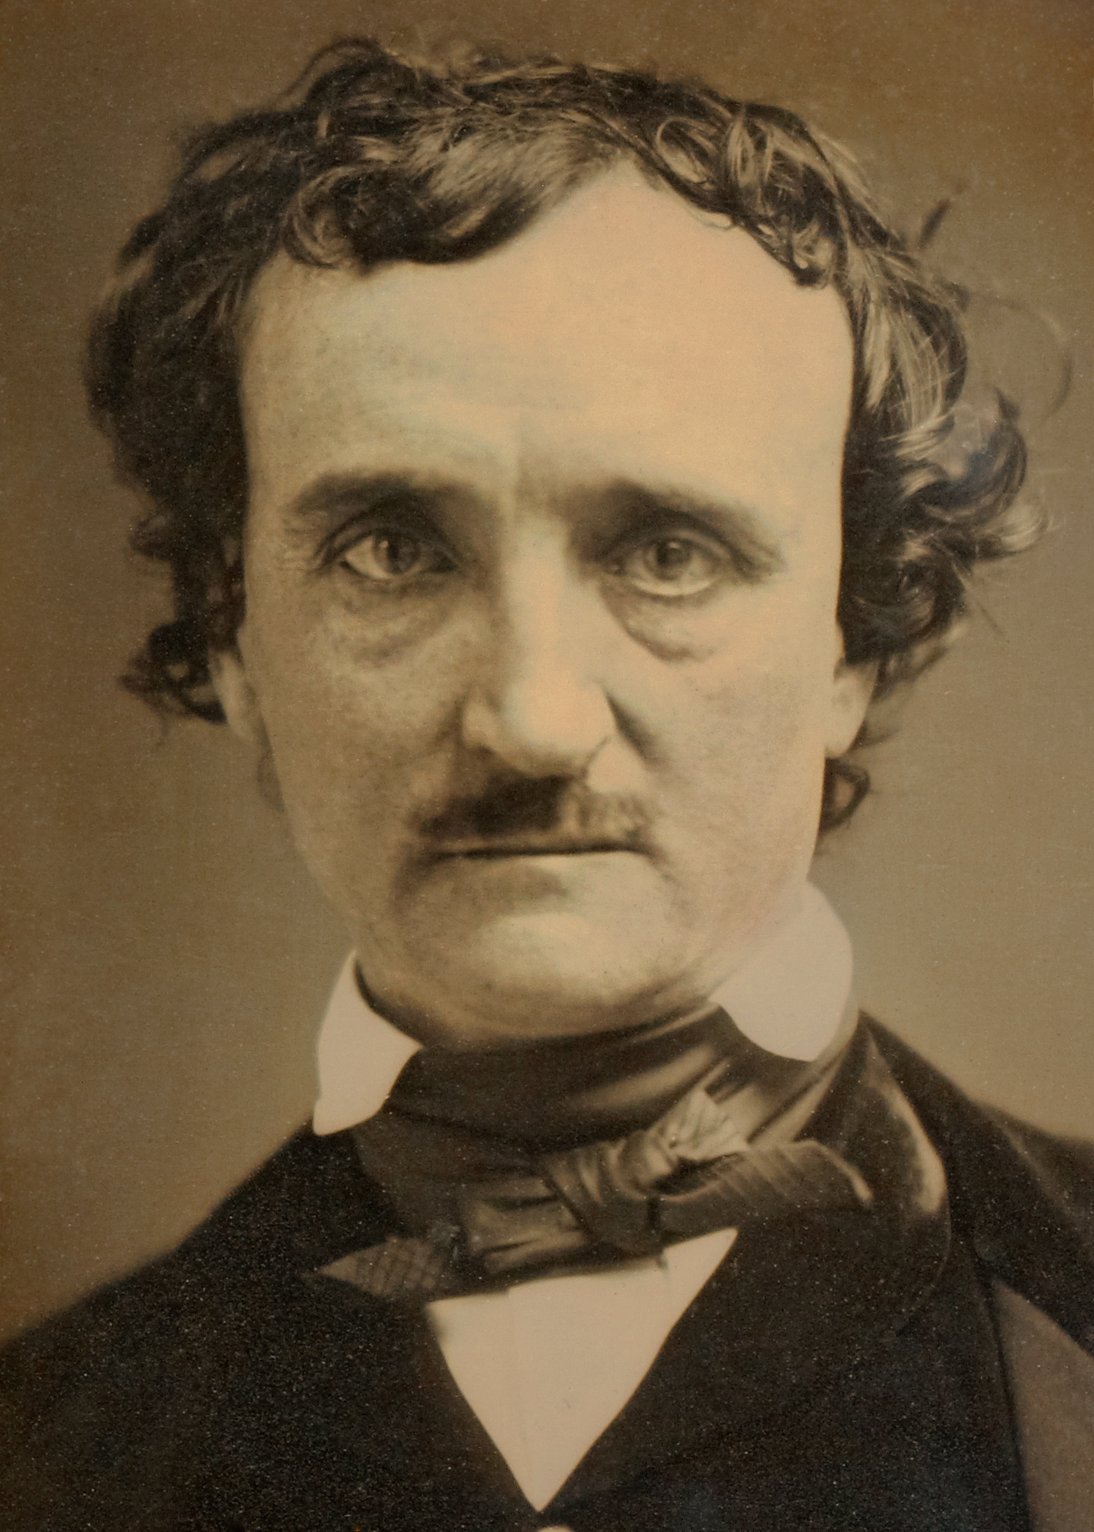 Poe knew where the dark side is—it lives inside us.